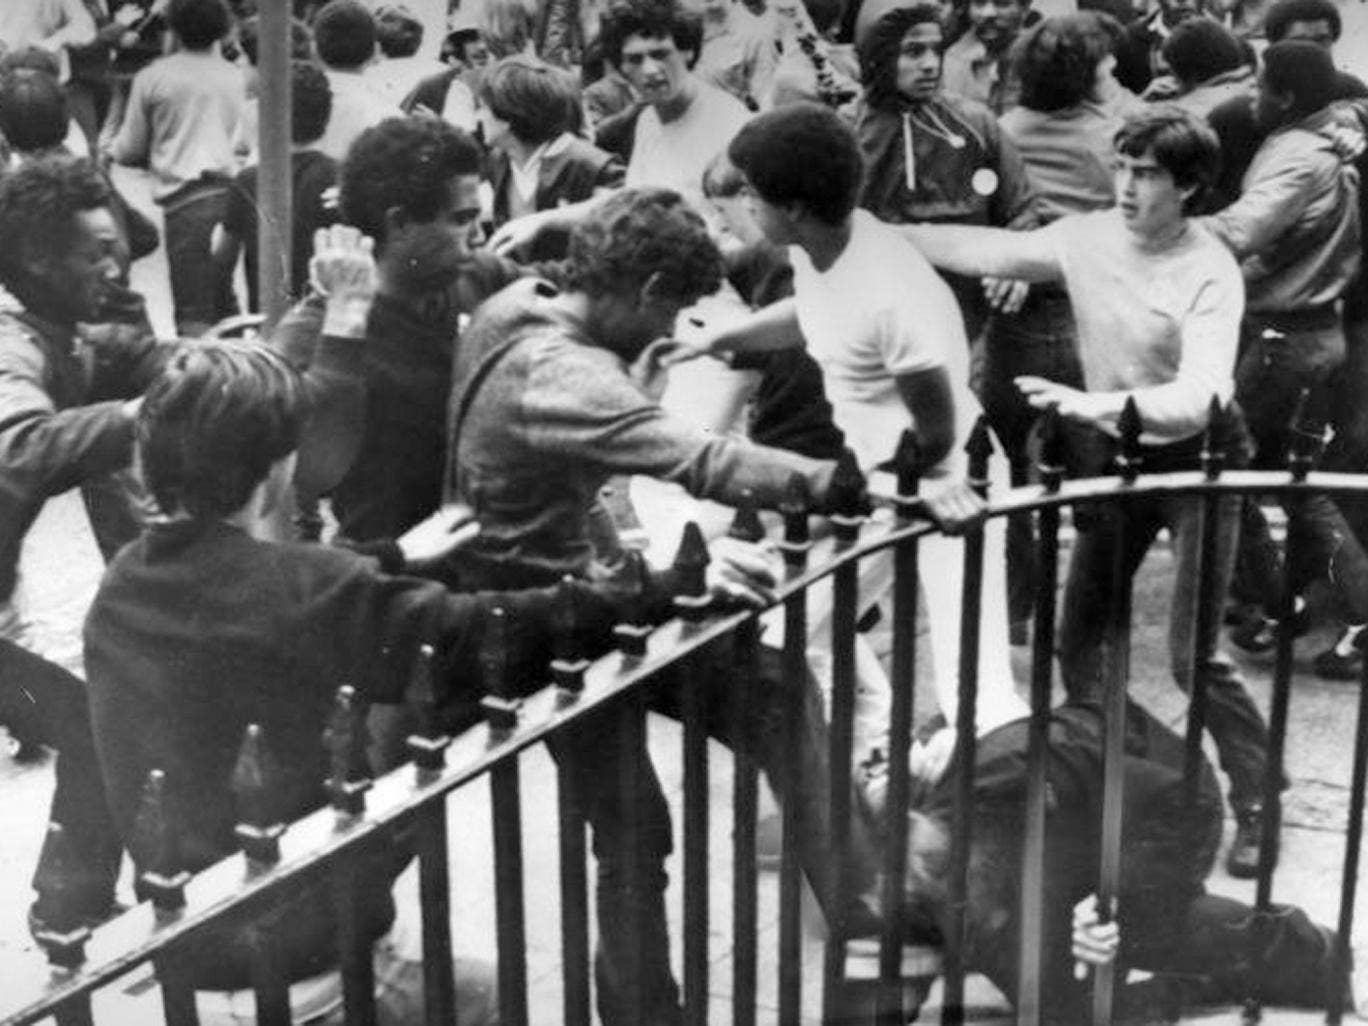 August 1981: Riots in Toxteth during an anti-police demonstration